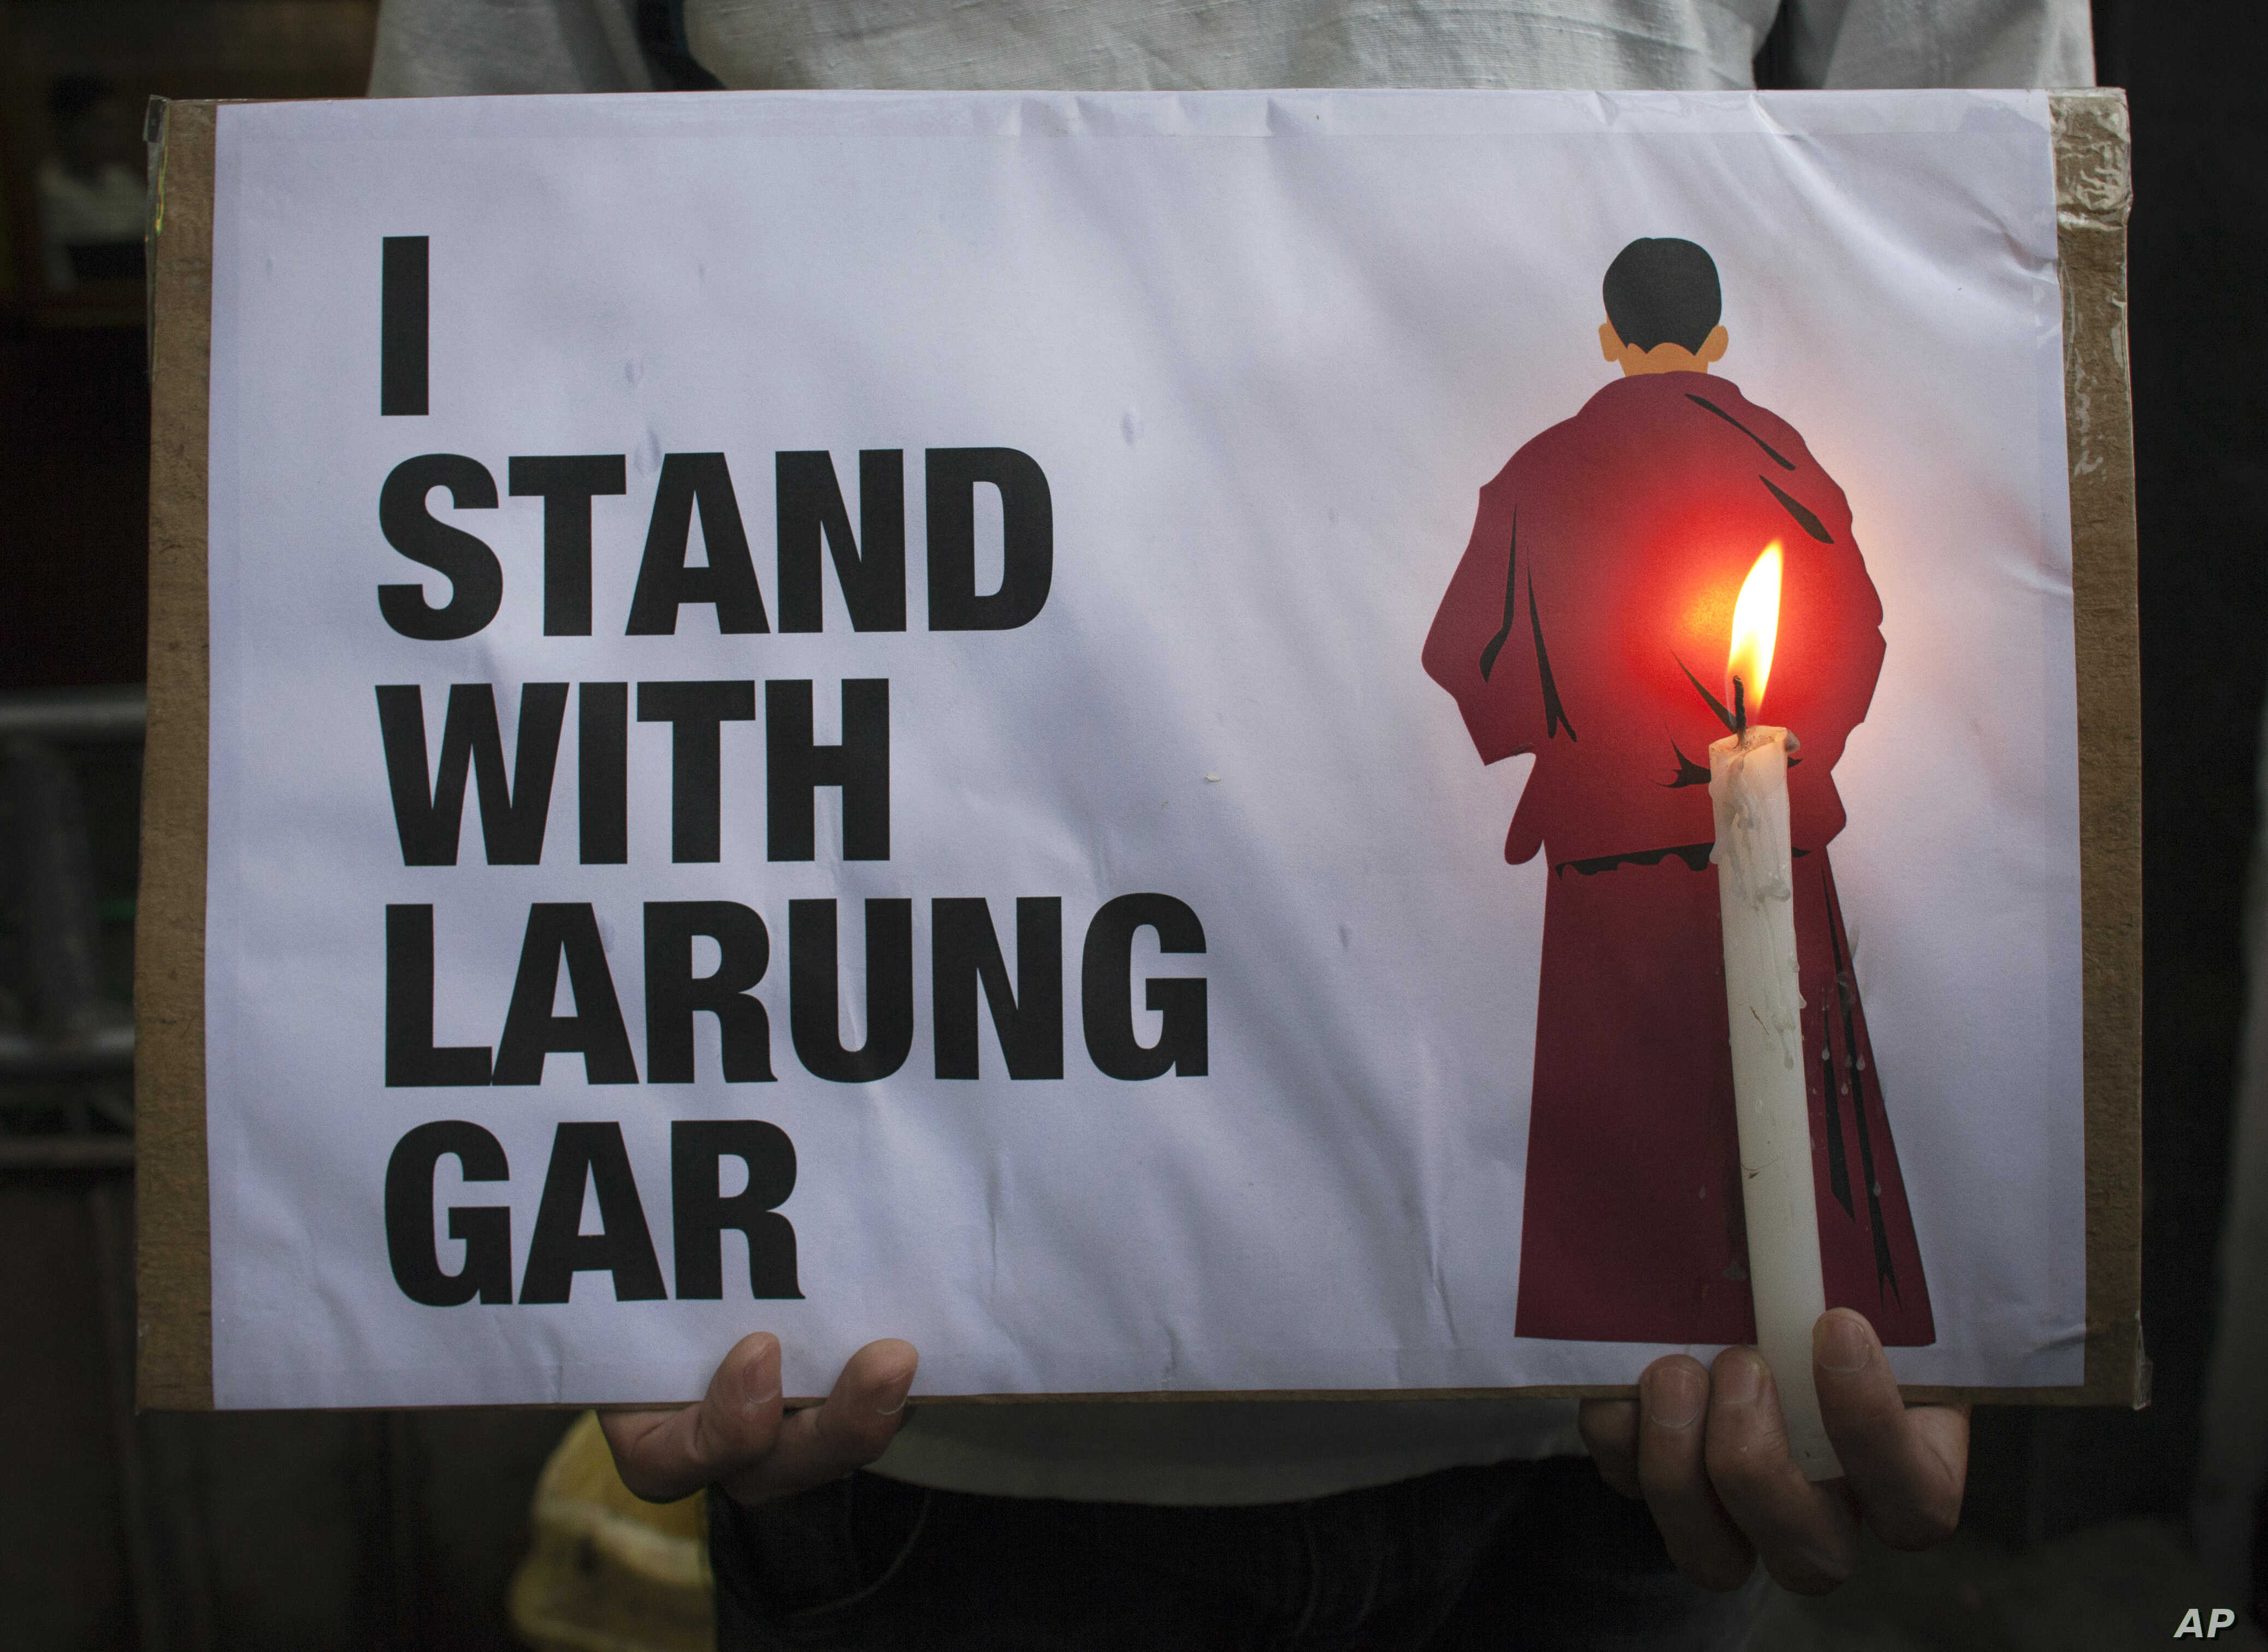 An exiled Tibetan holds a placard as he participates in a protest against the demolition of buildings in Larung Gar by Chinese authorities, during a demonstration in Dharmsala, India, Aug. 10, 2016.